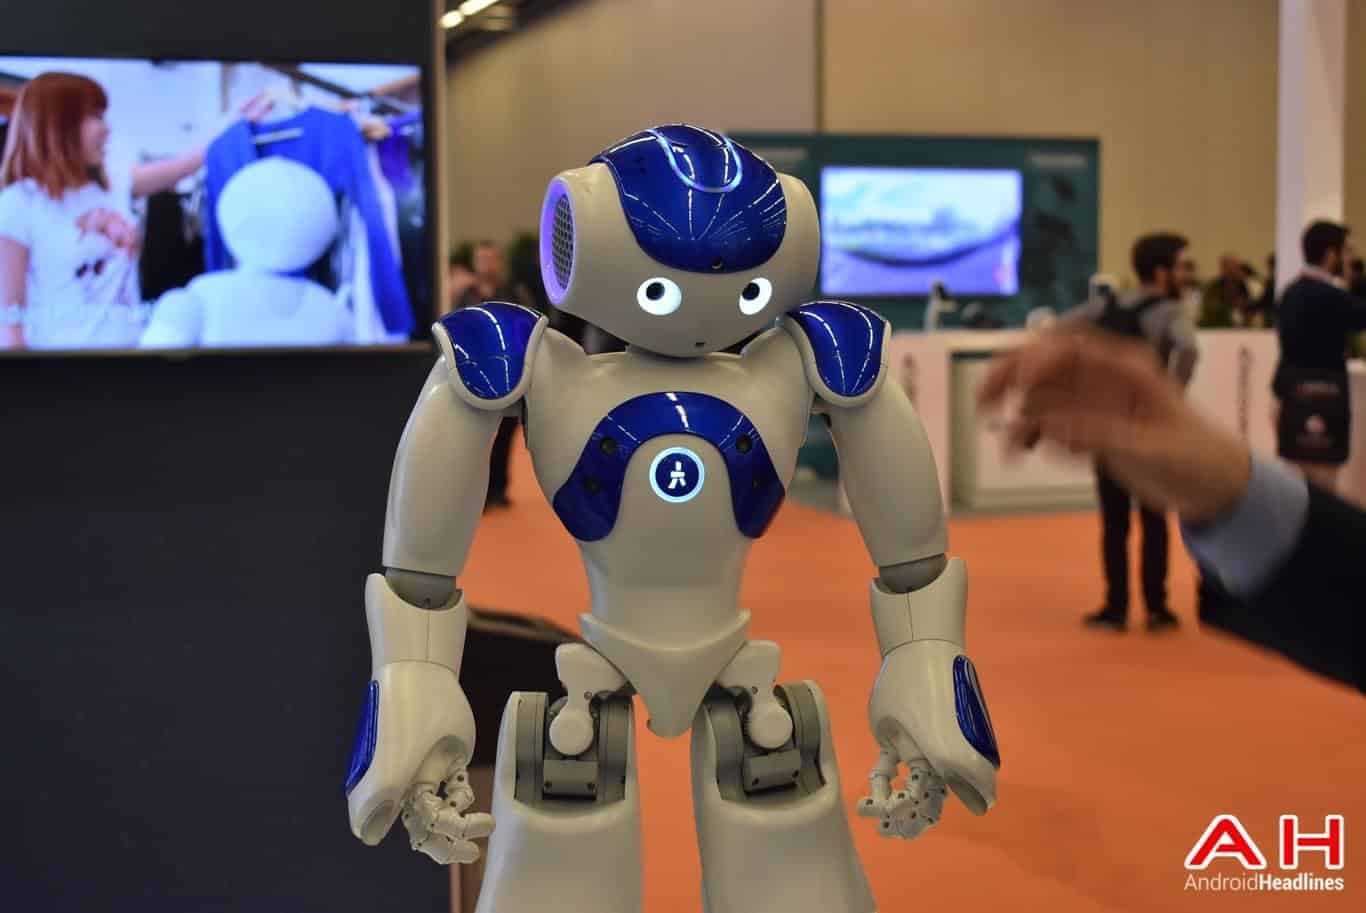 SoftBank Pepper Robot AH 16